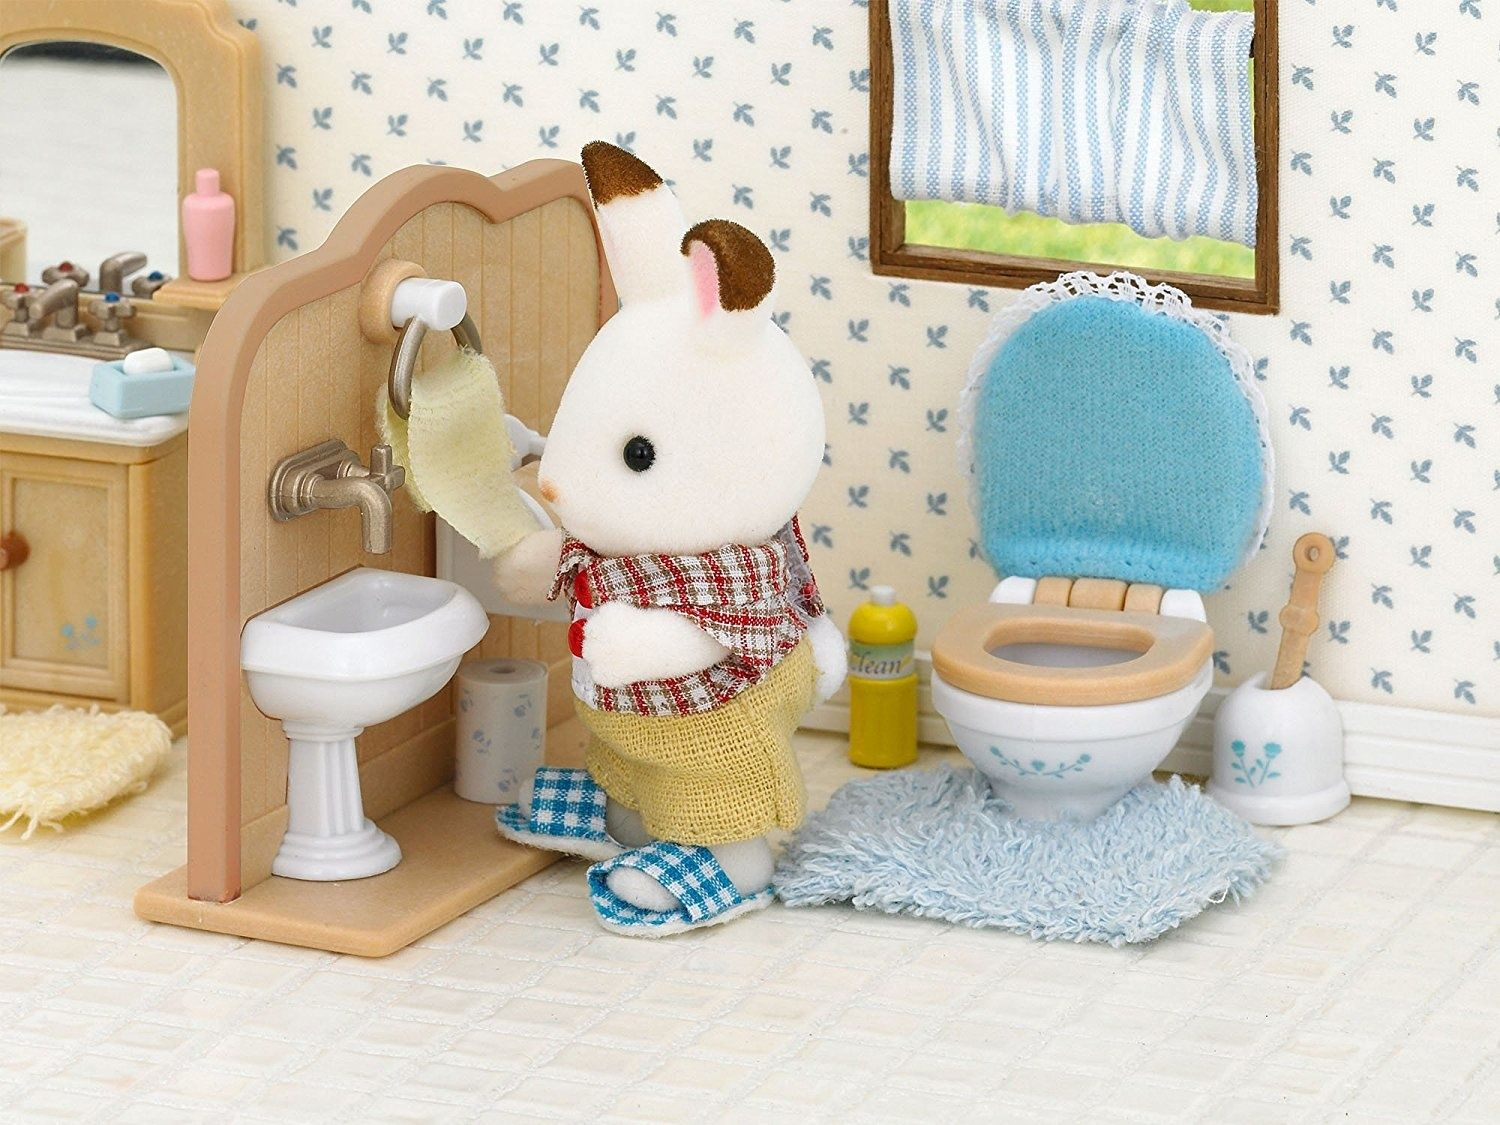 Destockage Meuble Salle De Bain Lyon ~ Bath Room Set Sylvanian Families Europe Action Figure